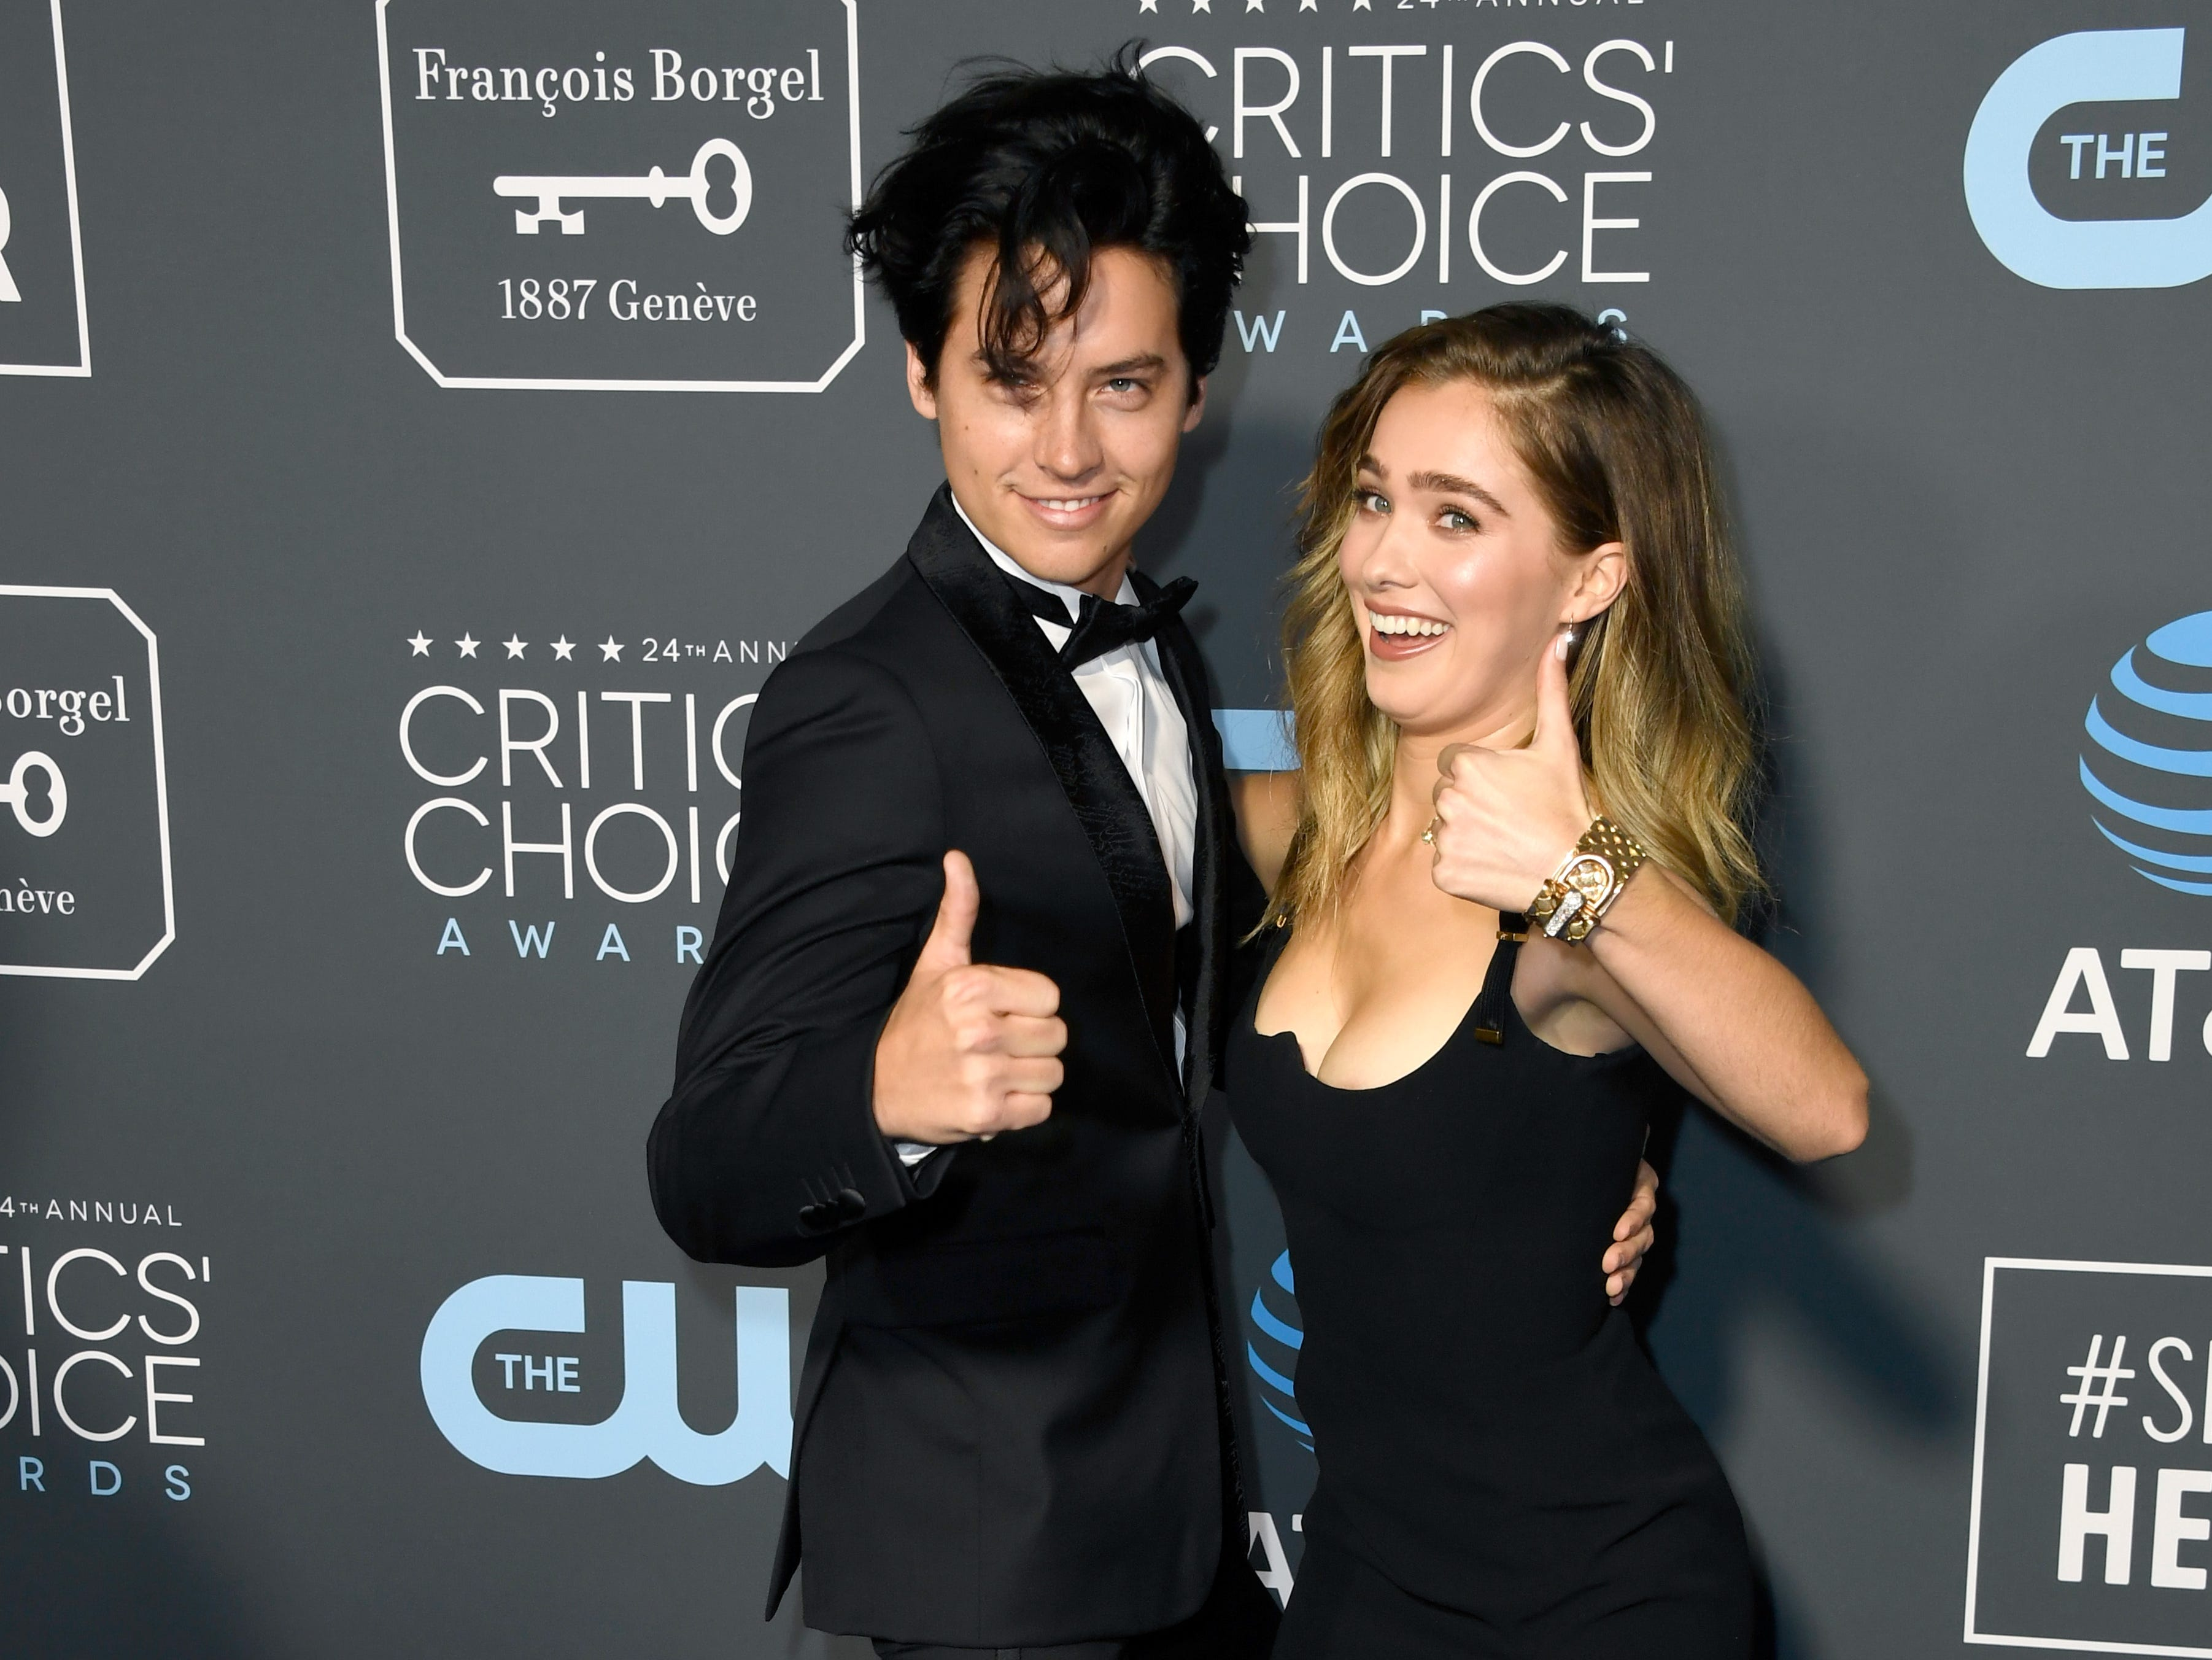 SANTA MONICA, CA - JANUARY 13:  Cole Sprouse (L) and Haley Lu Richardson attend the 24th annual Critics' Choice Awards at Barker Hangar on January 13, 2019 in Santa Monica, California.  (Photo by Frazer Harrison/Getty Images) ORG XMIT: 775260317 ORIG FILE ID: 1082130448